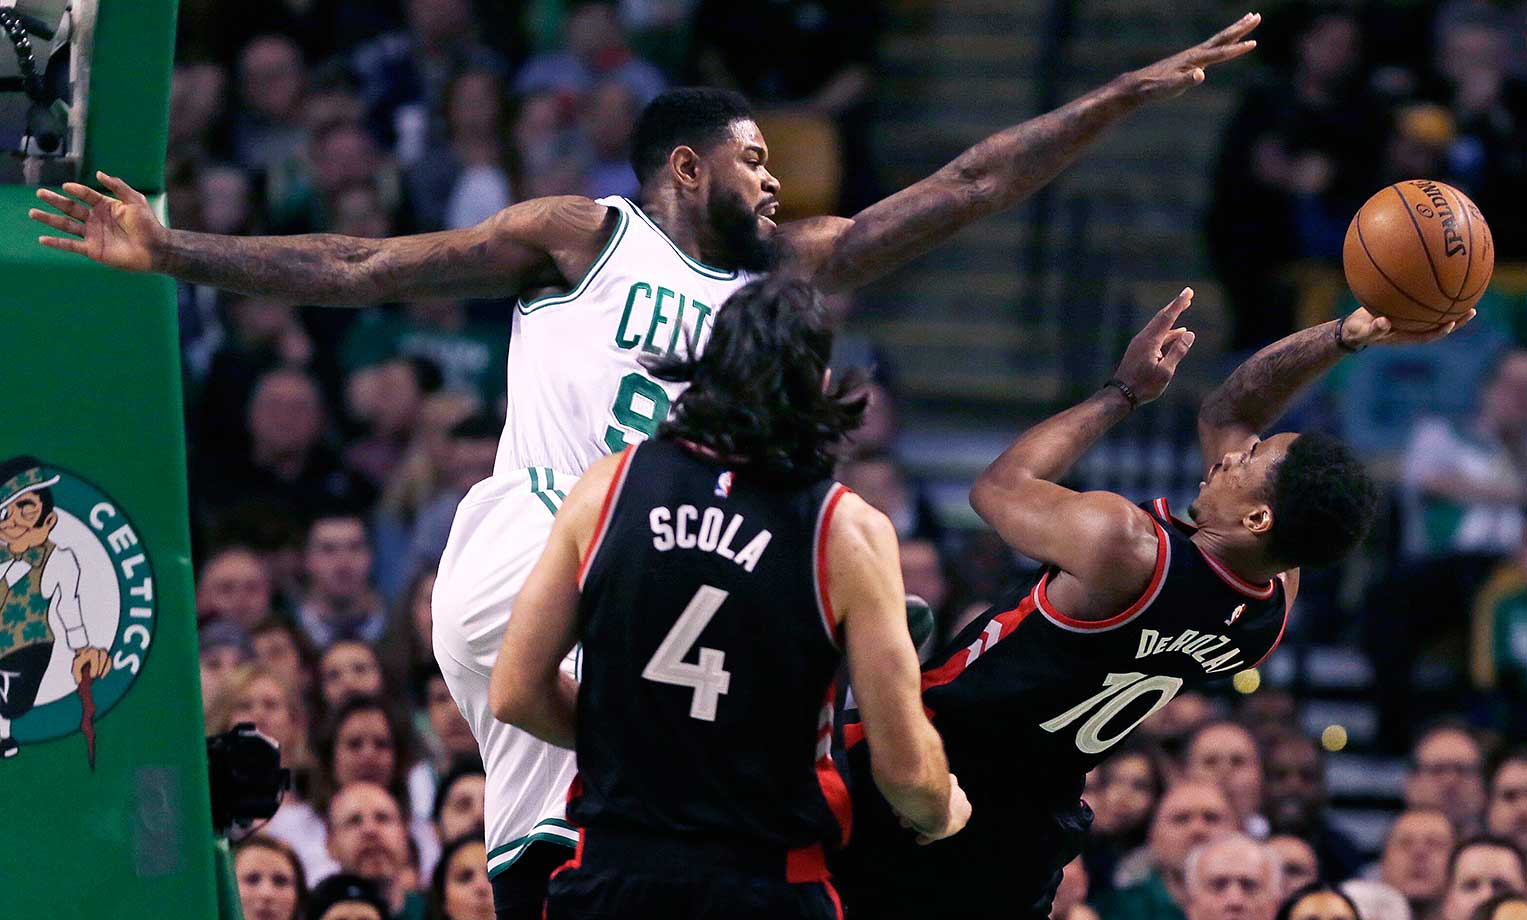 Boston Celtics forward Amir Johnson tries to block Toronto Raptors guard DeMar DeRozan.